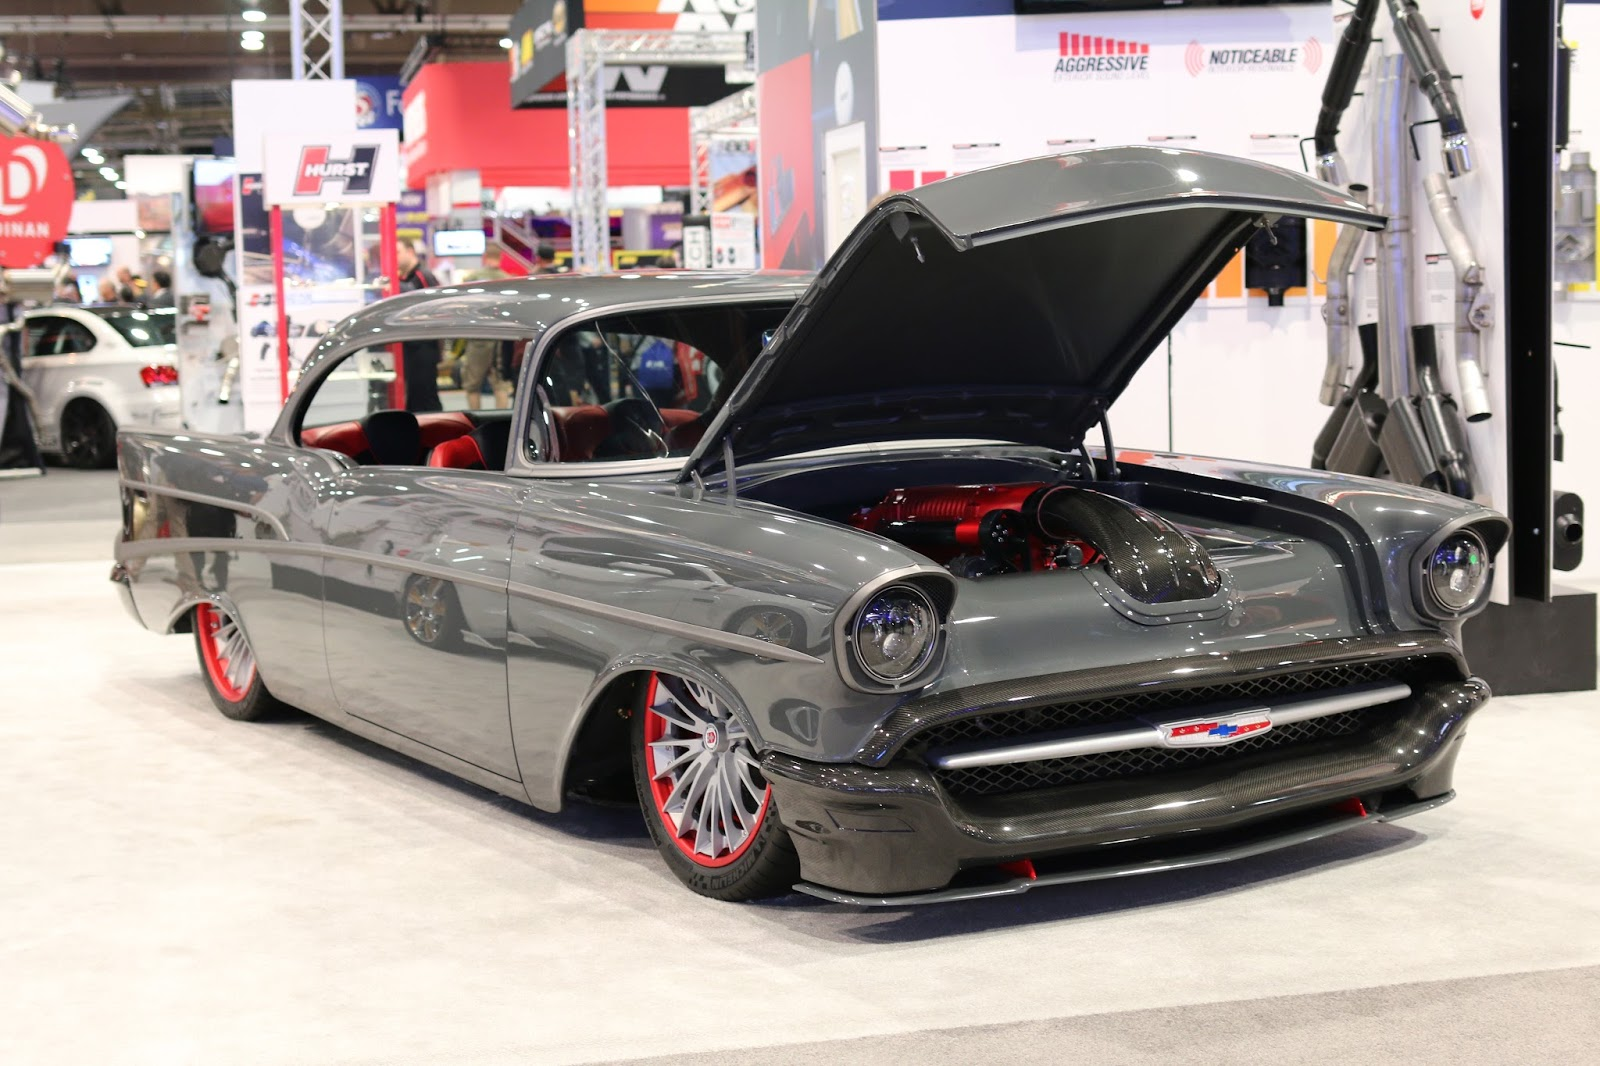 cars custom classic sema cool vehicles las vegas covering